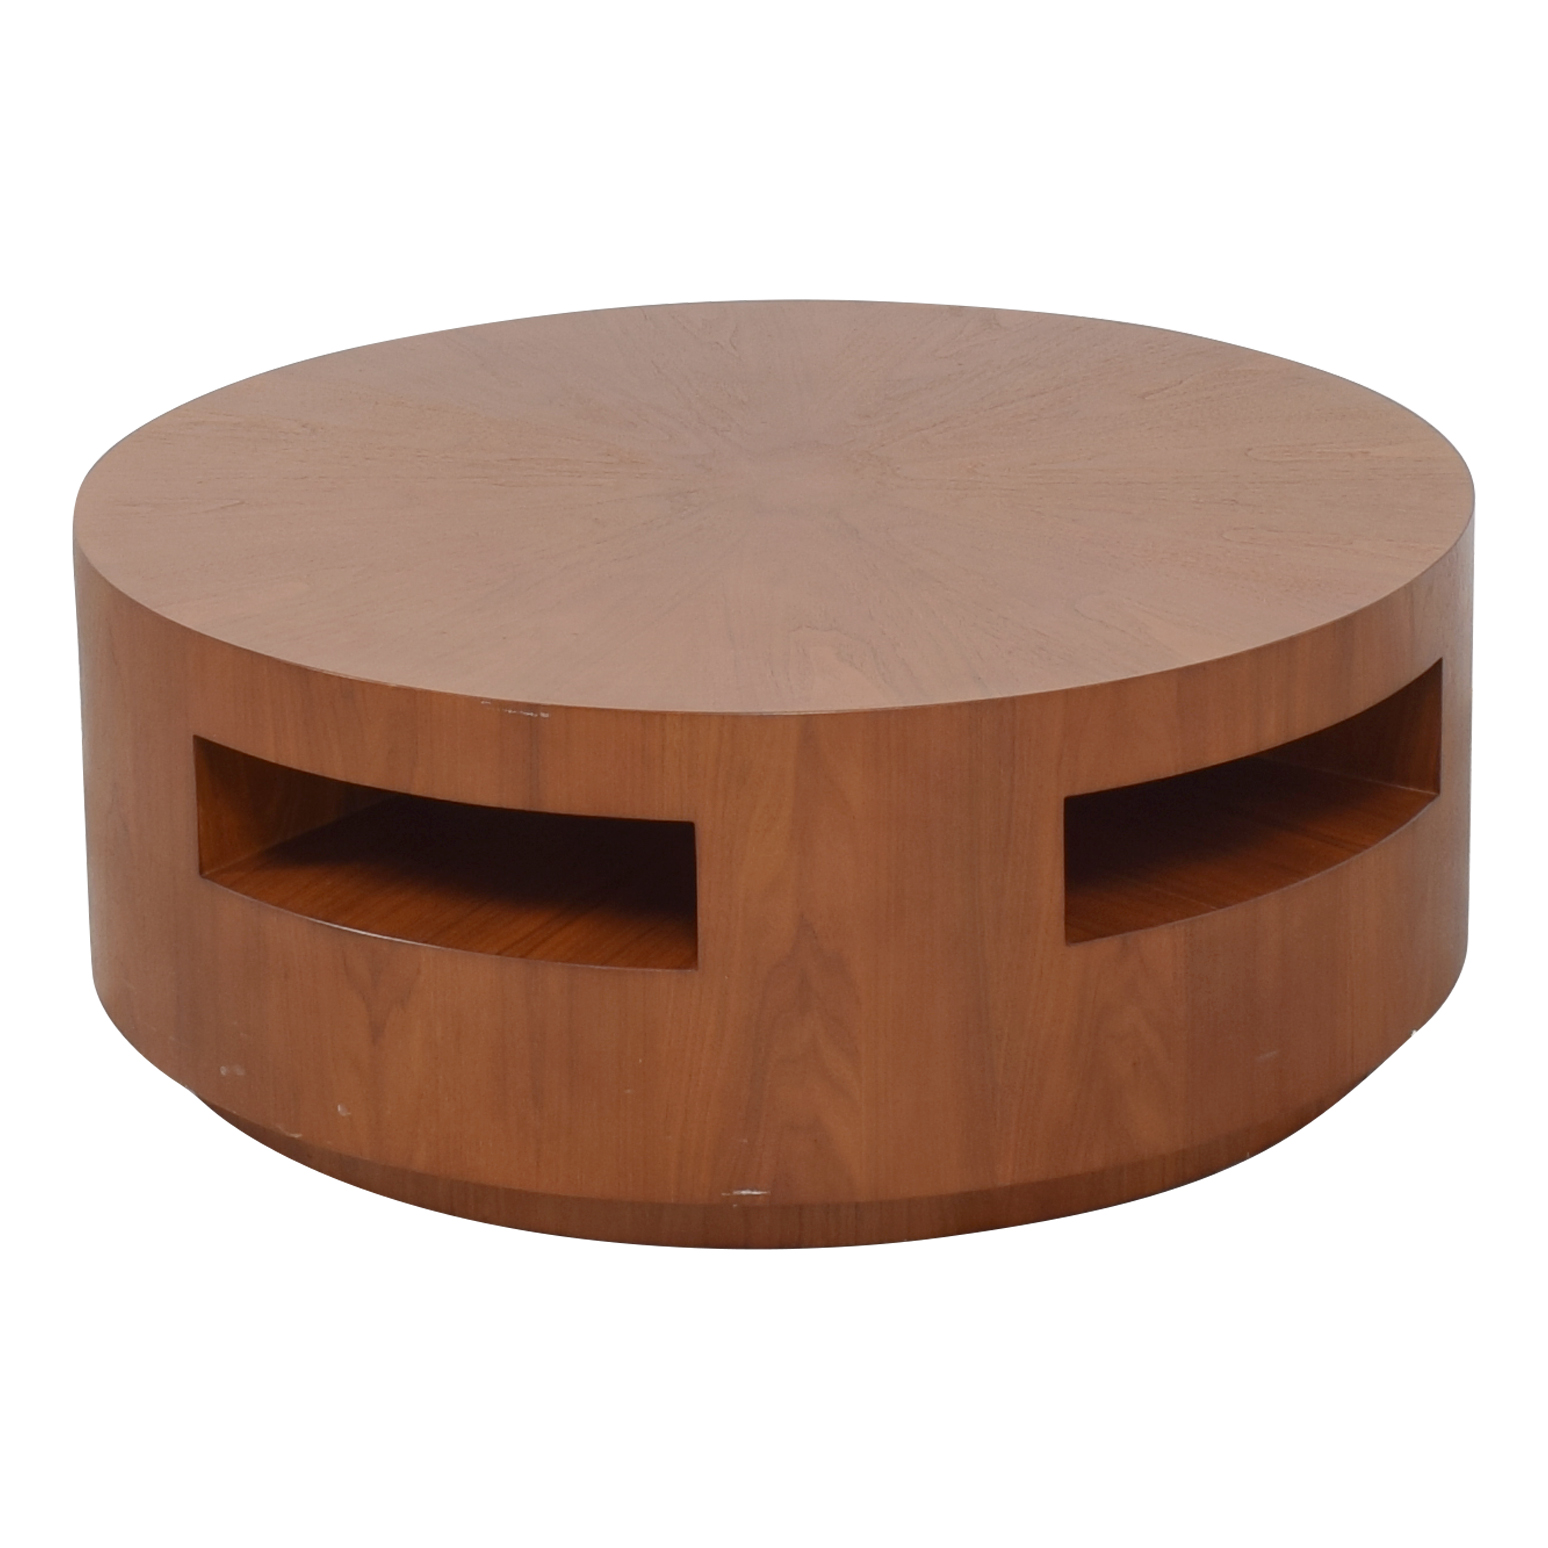 Crate & Barrel Crate & Barrel Tambe Coffee Table on sale